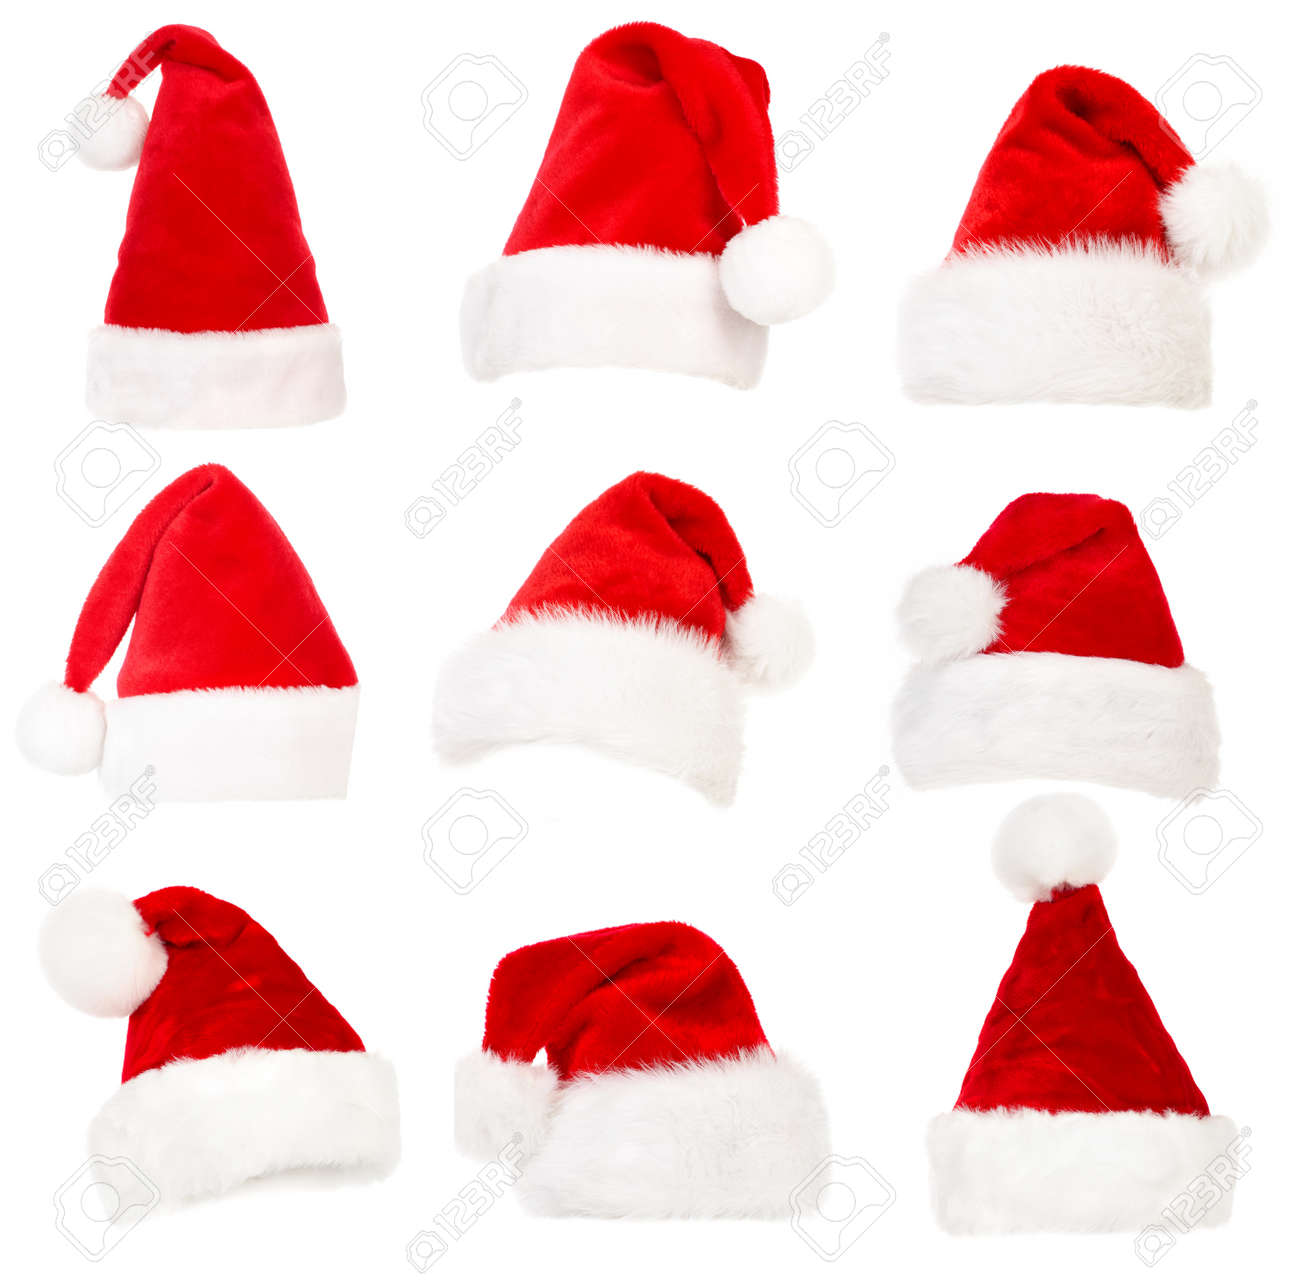 Christmas Hats.Set Of Santa Hats Isolated Over White Background